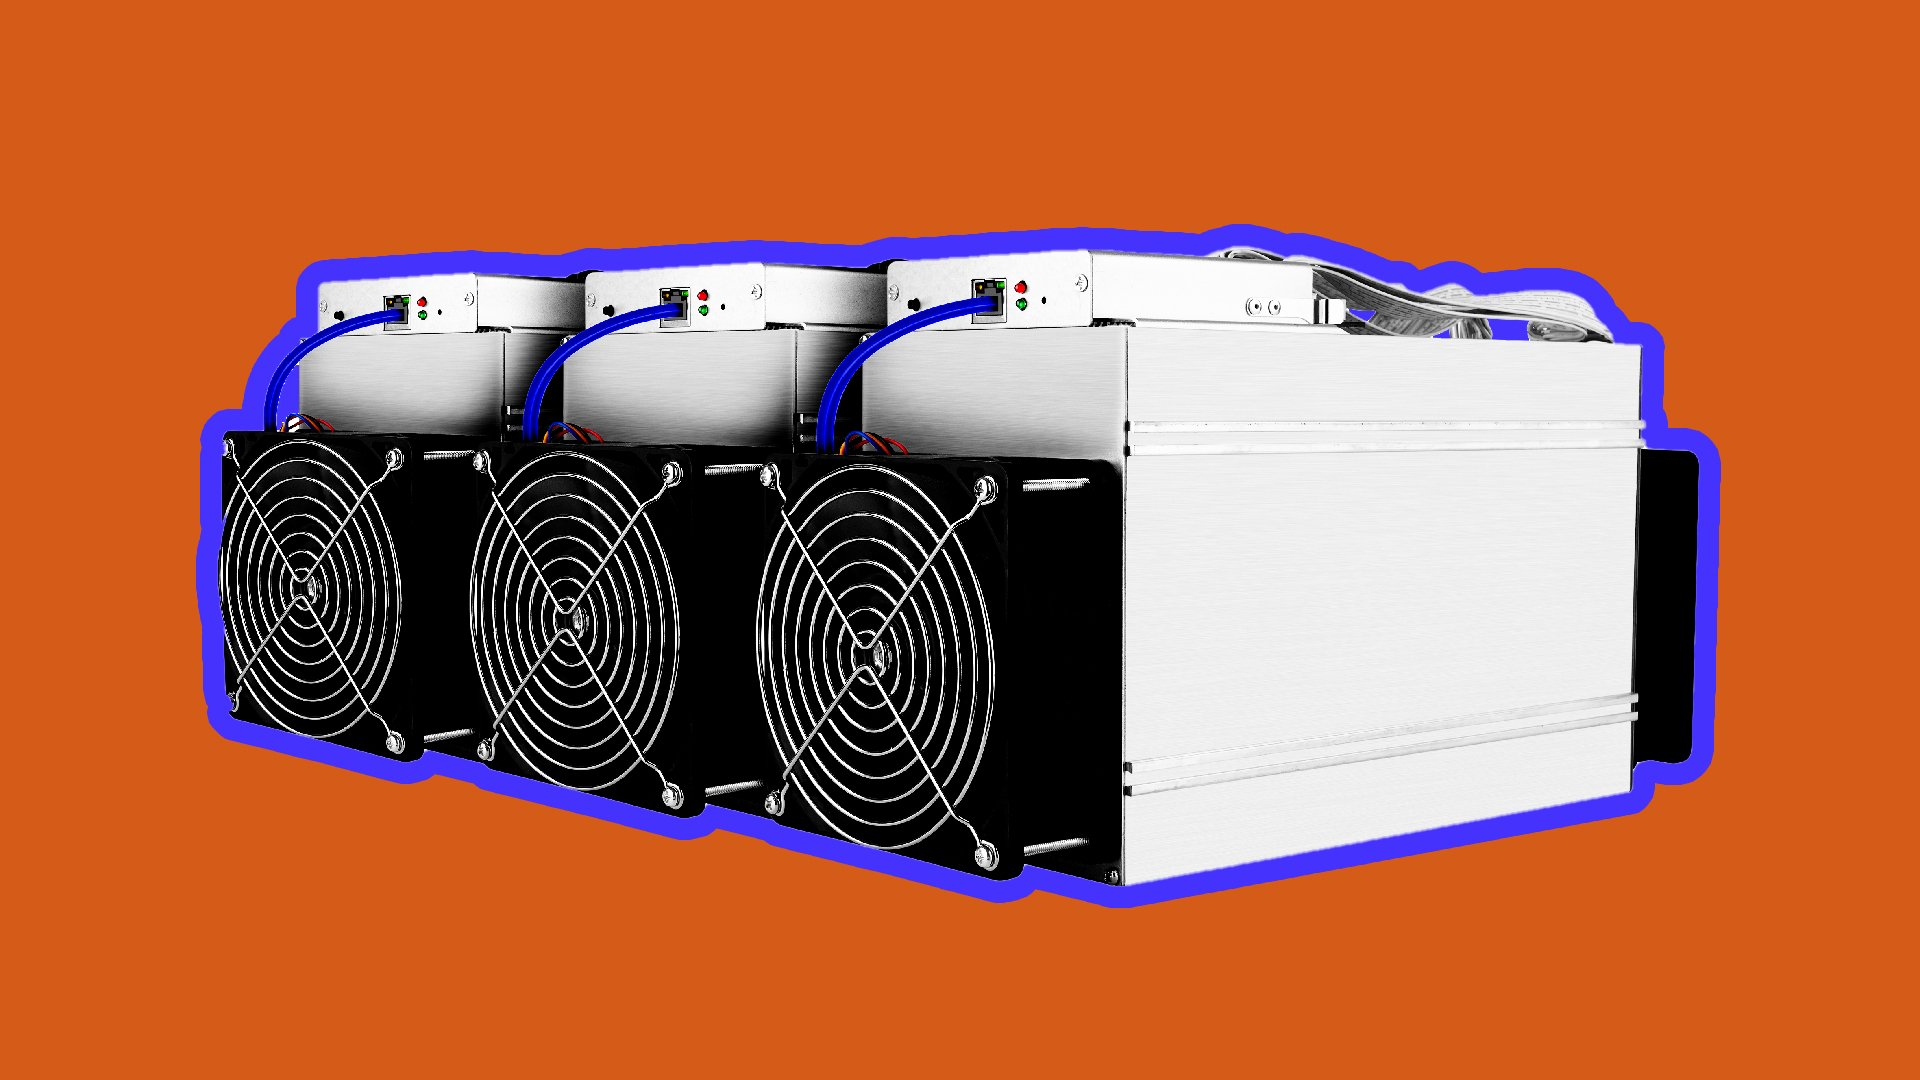 Secondhand bitcoin miner supply is spiking after China's shutdown orders